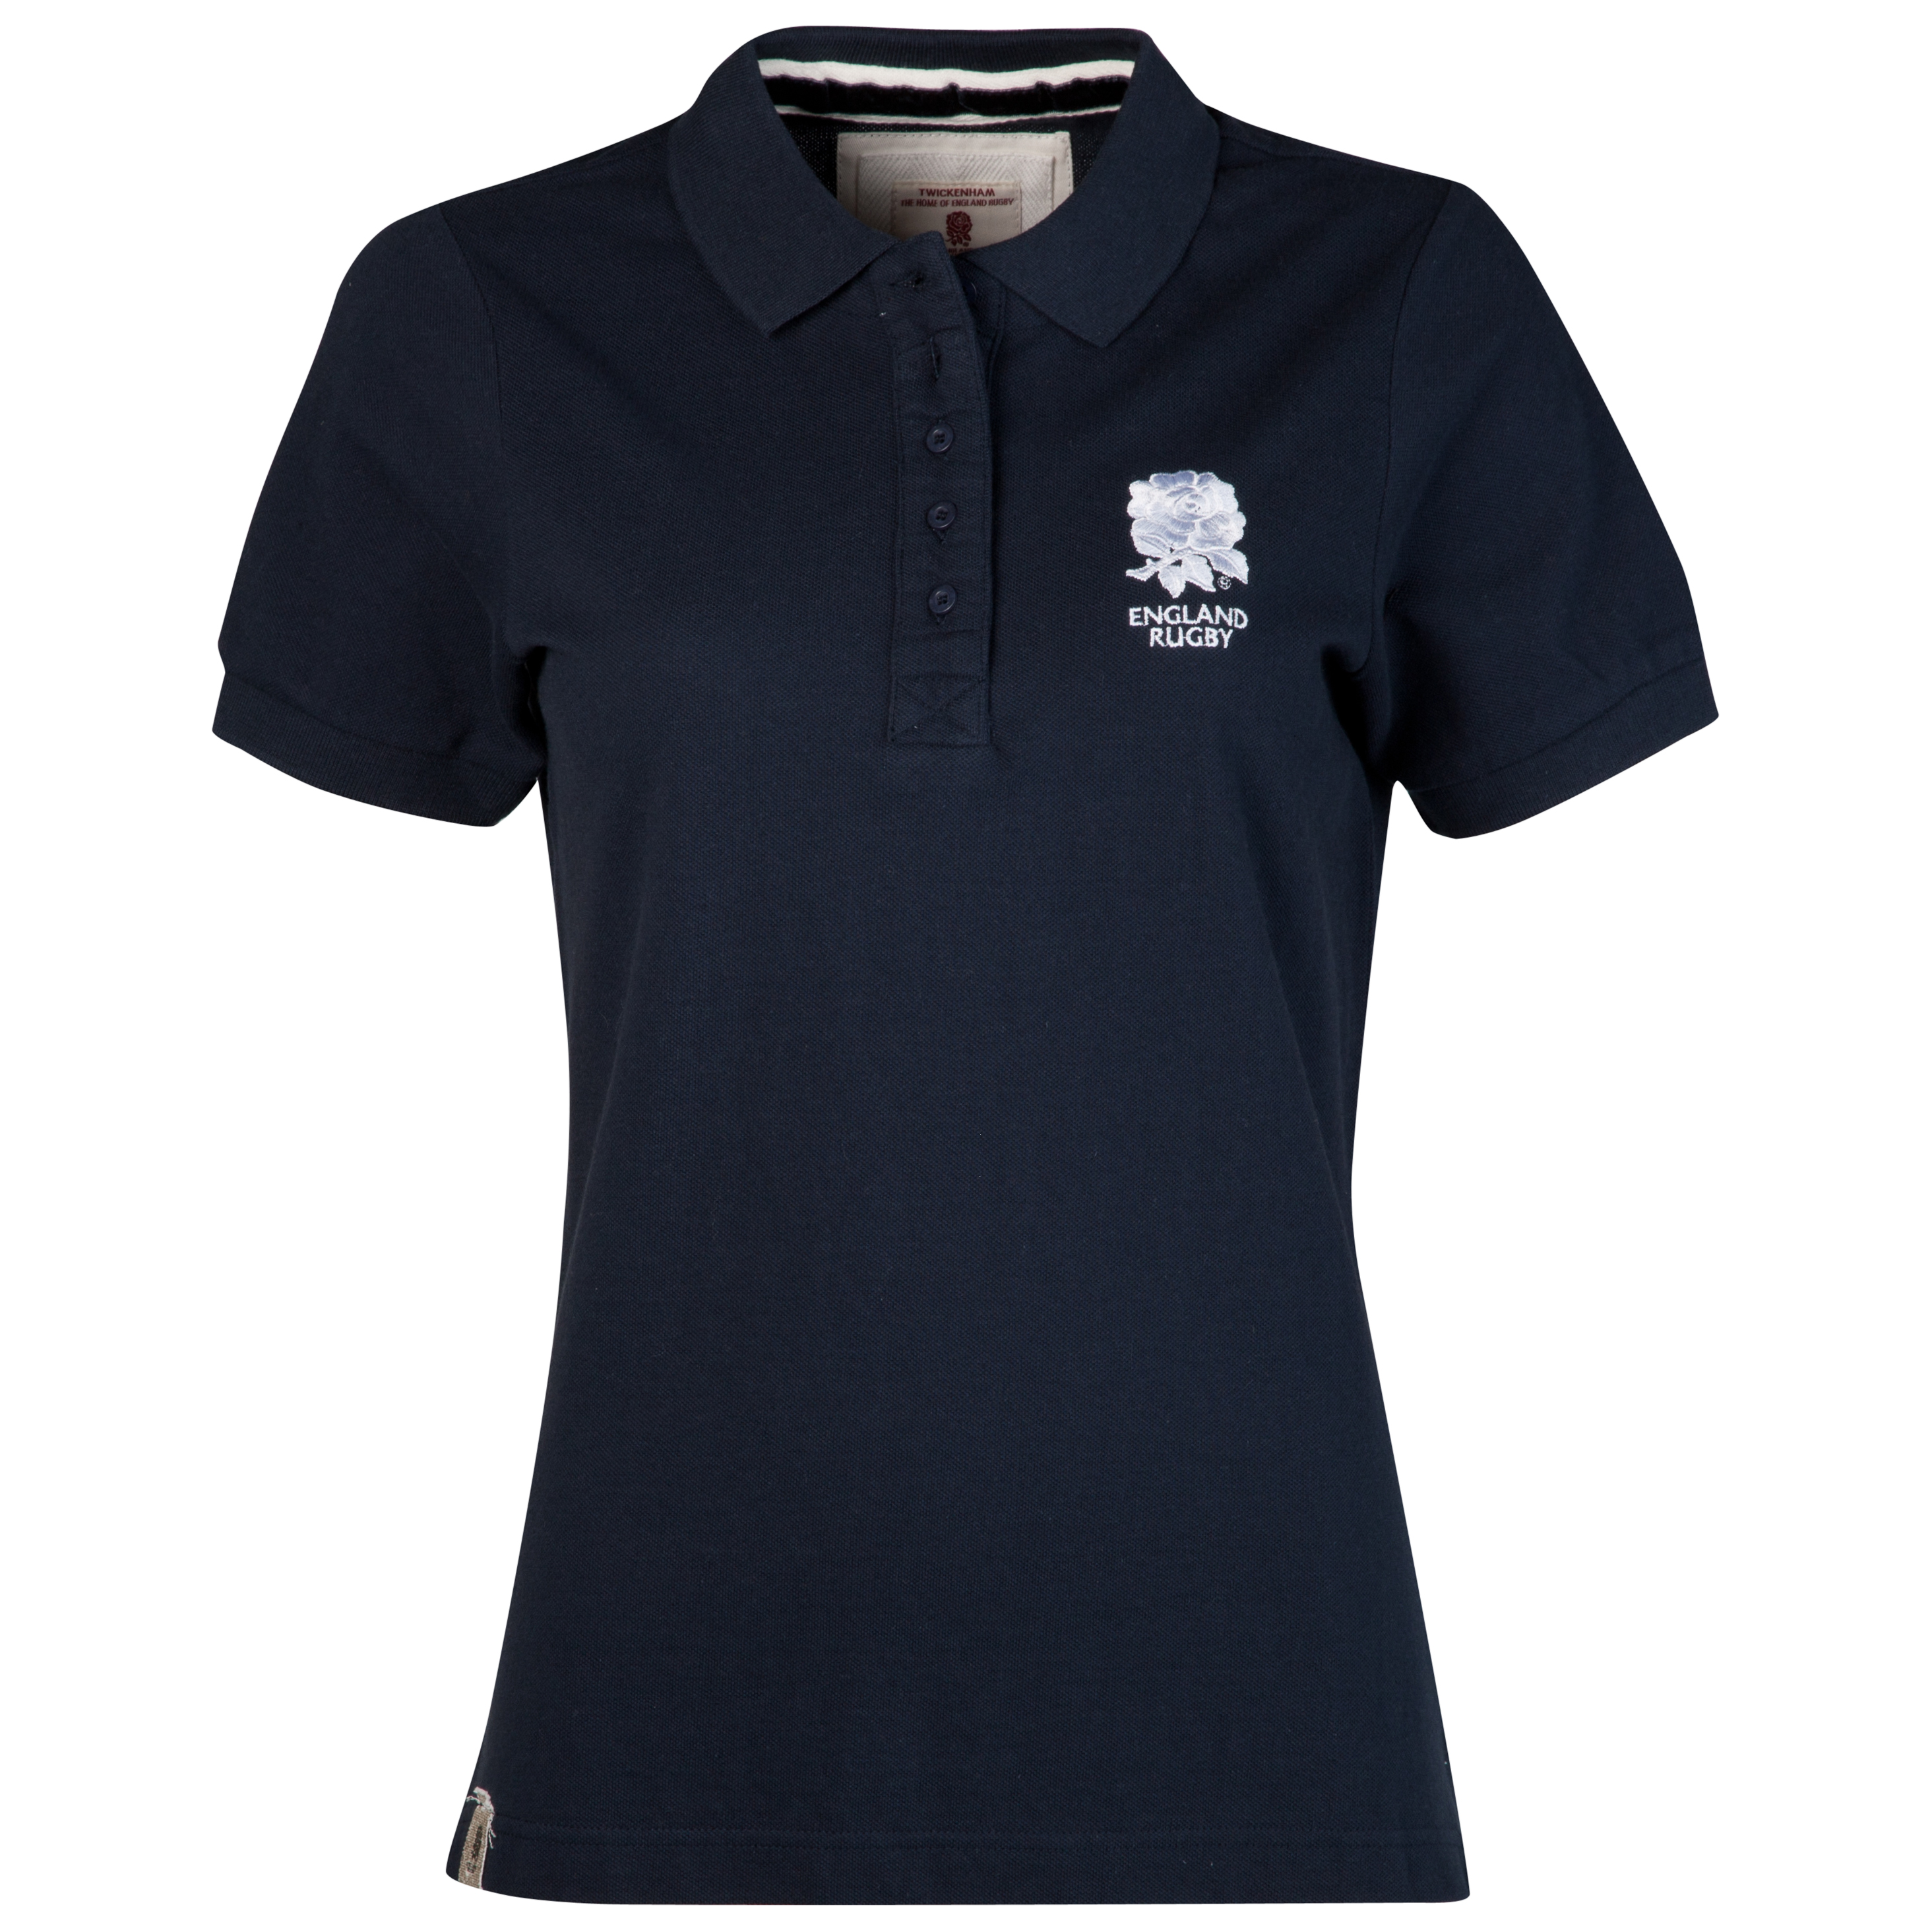 England Rugby Polo - Navy - Womens